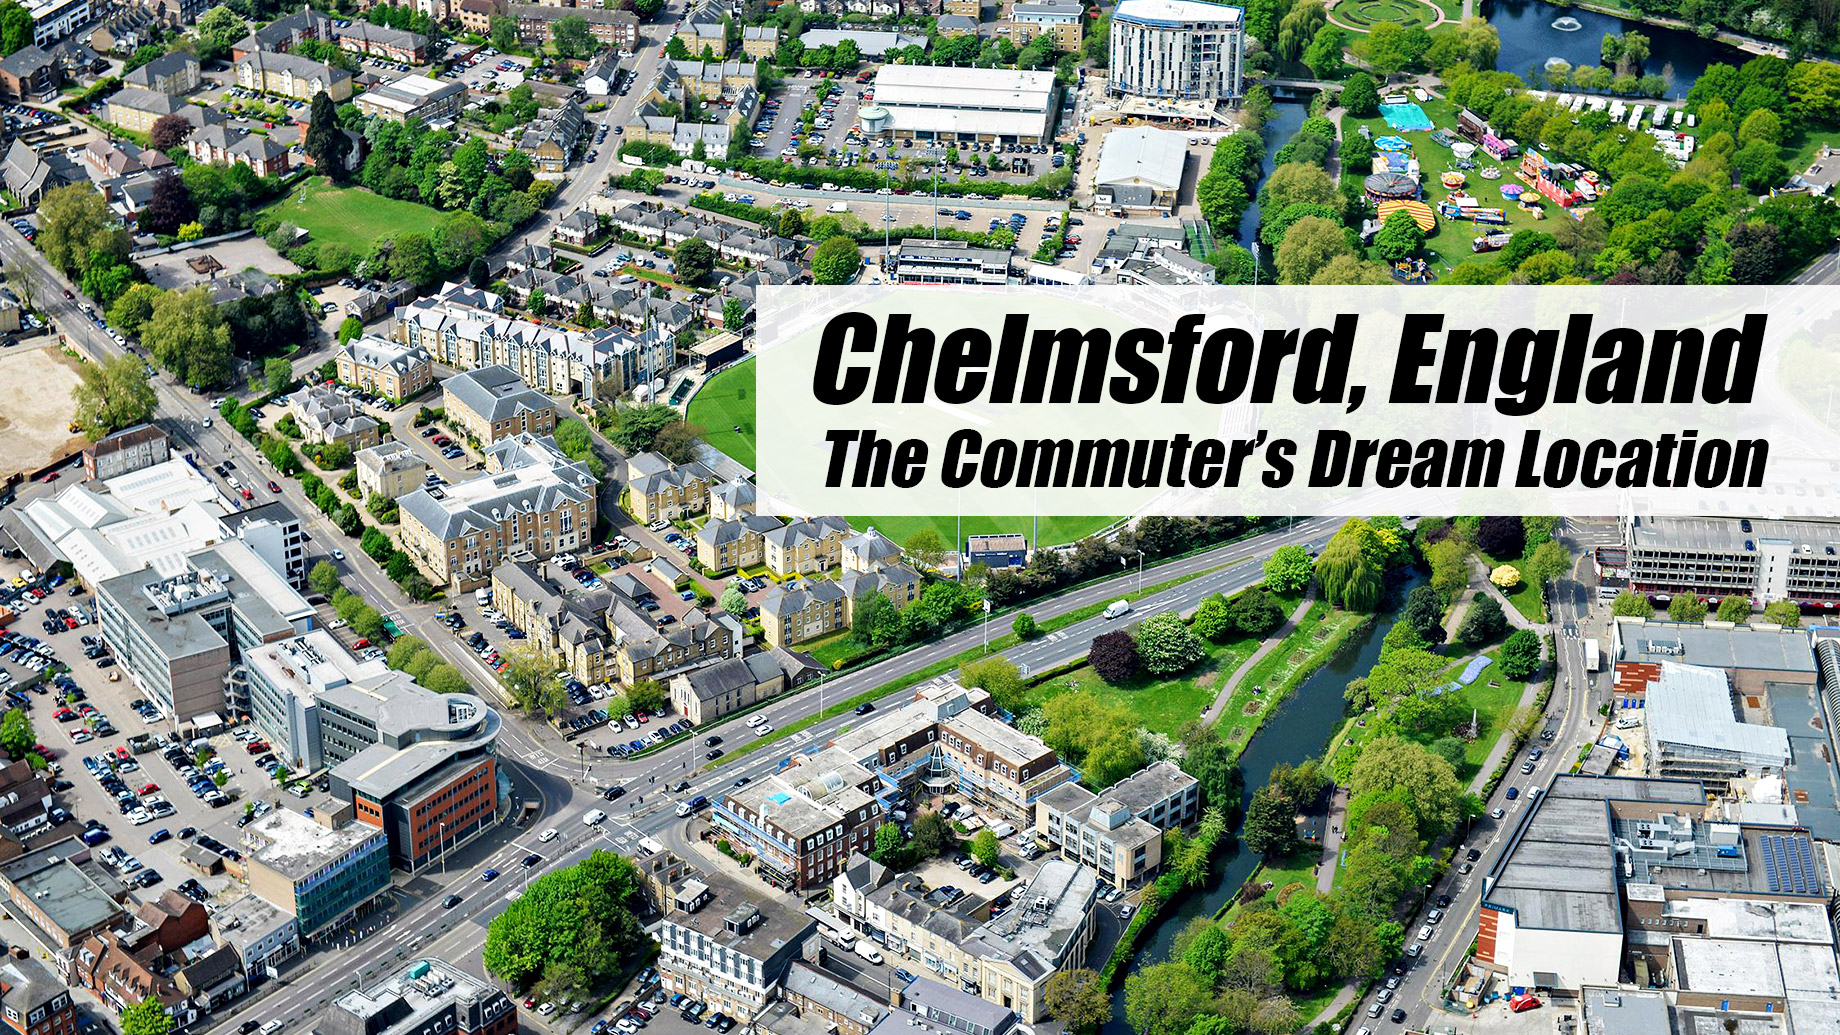 Chelmsford, England - The Commuter's Dream Location